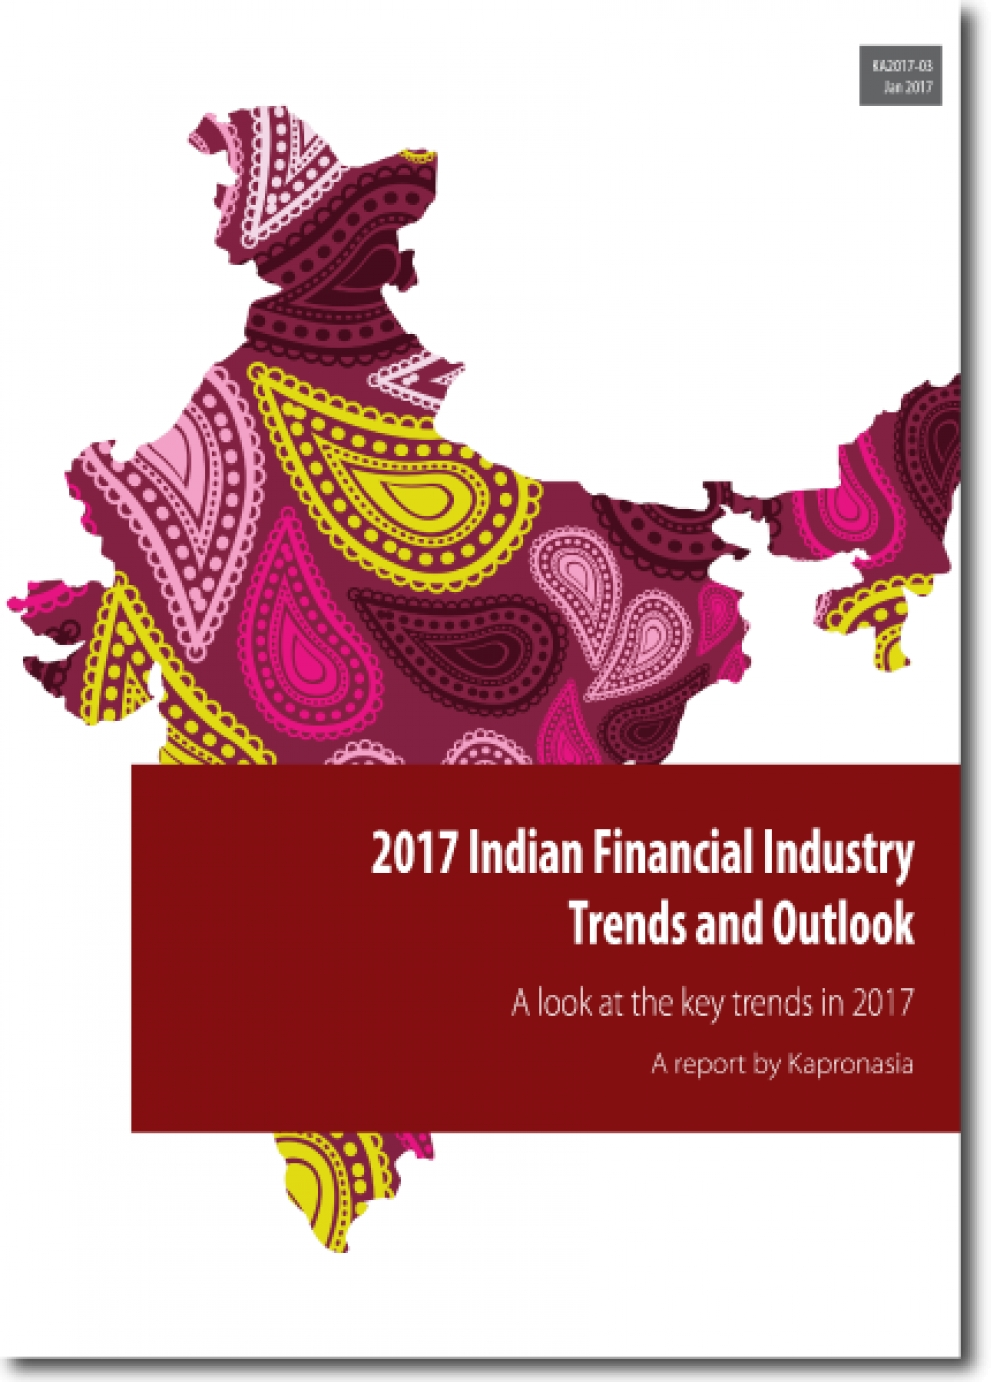 2017 Indian Financial Industry Trends and Outlook